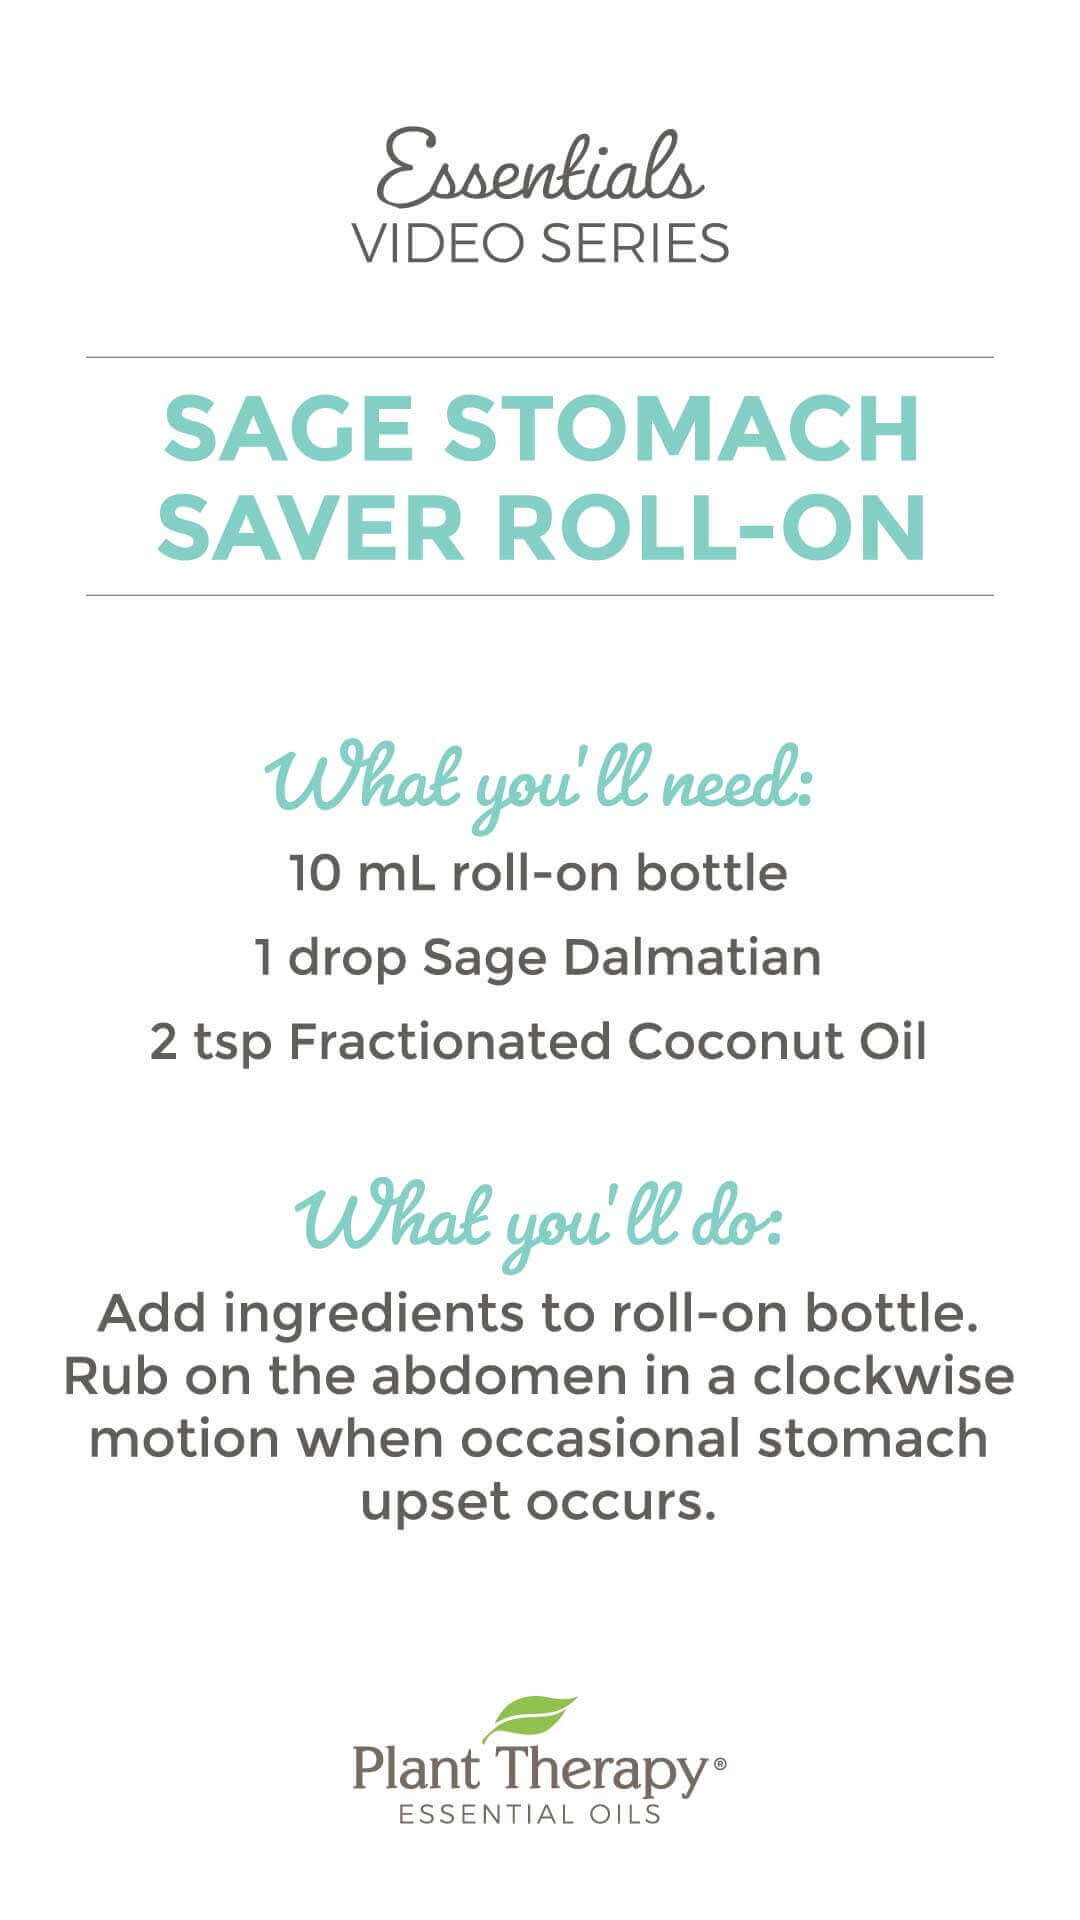 Essentials Video: Sage Stomach Saver Roll-On